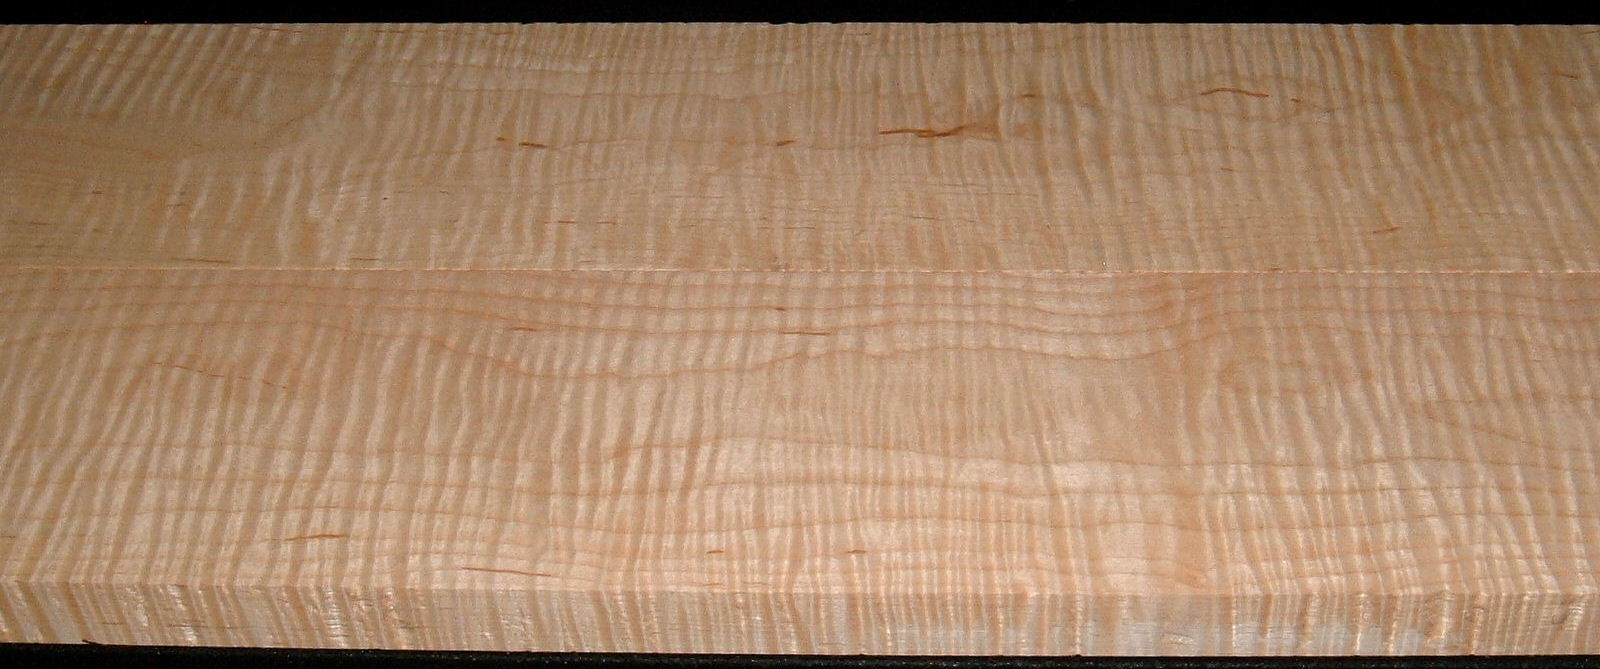 M2007-568L, 2 Bd Set, +1-1/16x5-7/8x49, +1-1/16x5-1/2x49, Curly Tiger Maple